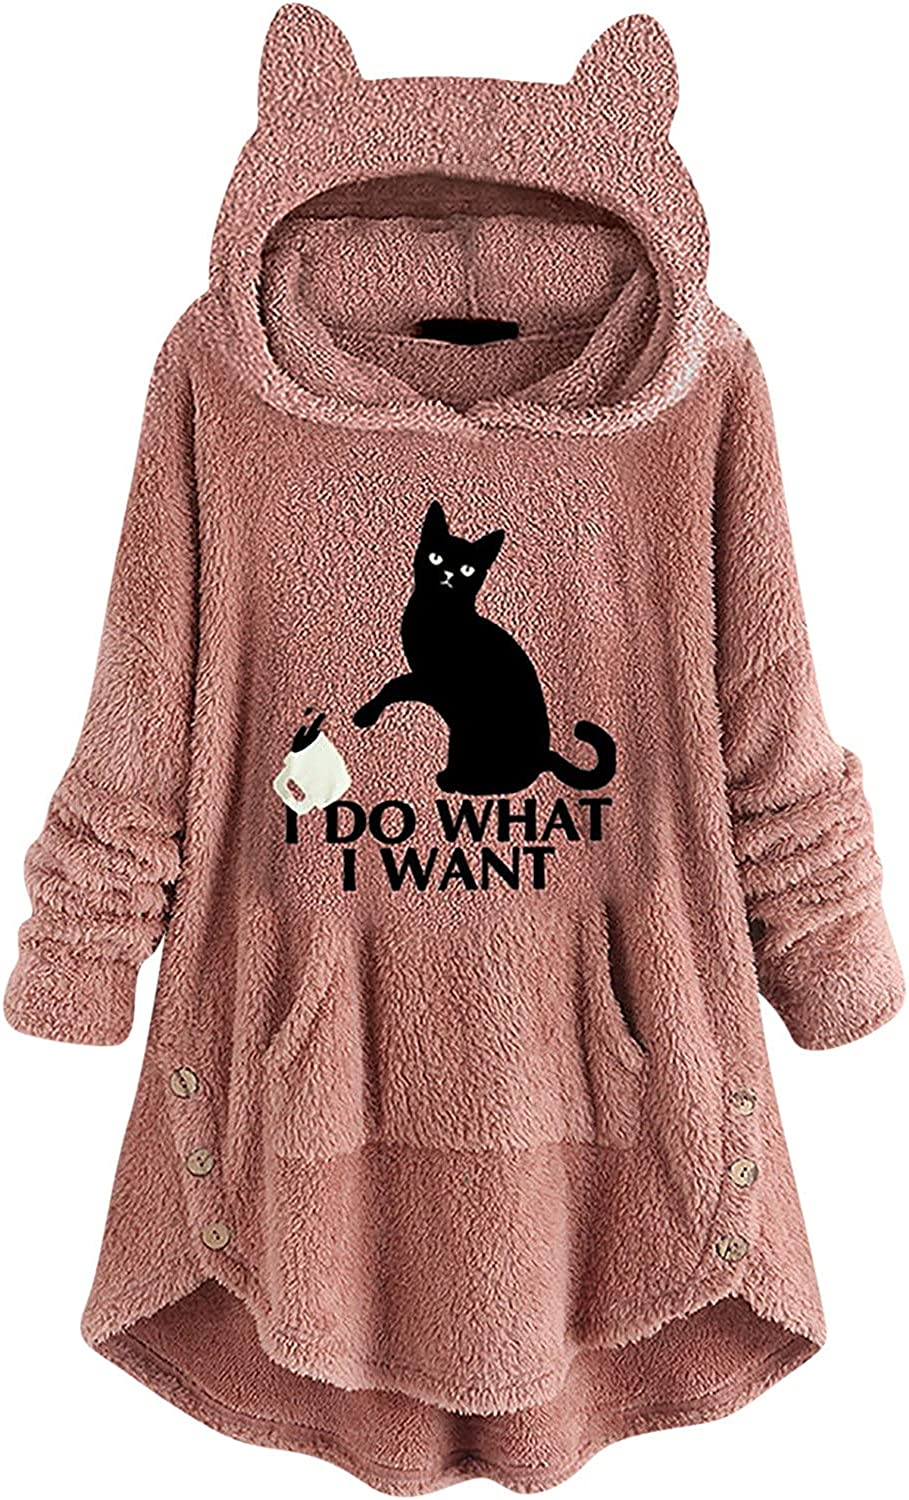 Winter Coats for Women,Fashion Hooded Pocket Plus Size Wool Warm Top Embroidered Print Cat Ear Long Sleeve Ladies Fit Sweater